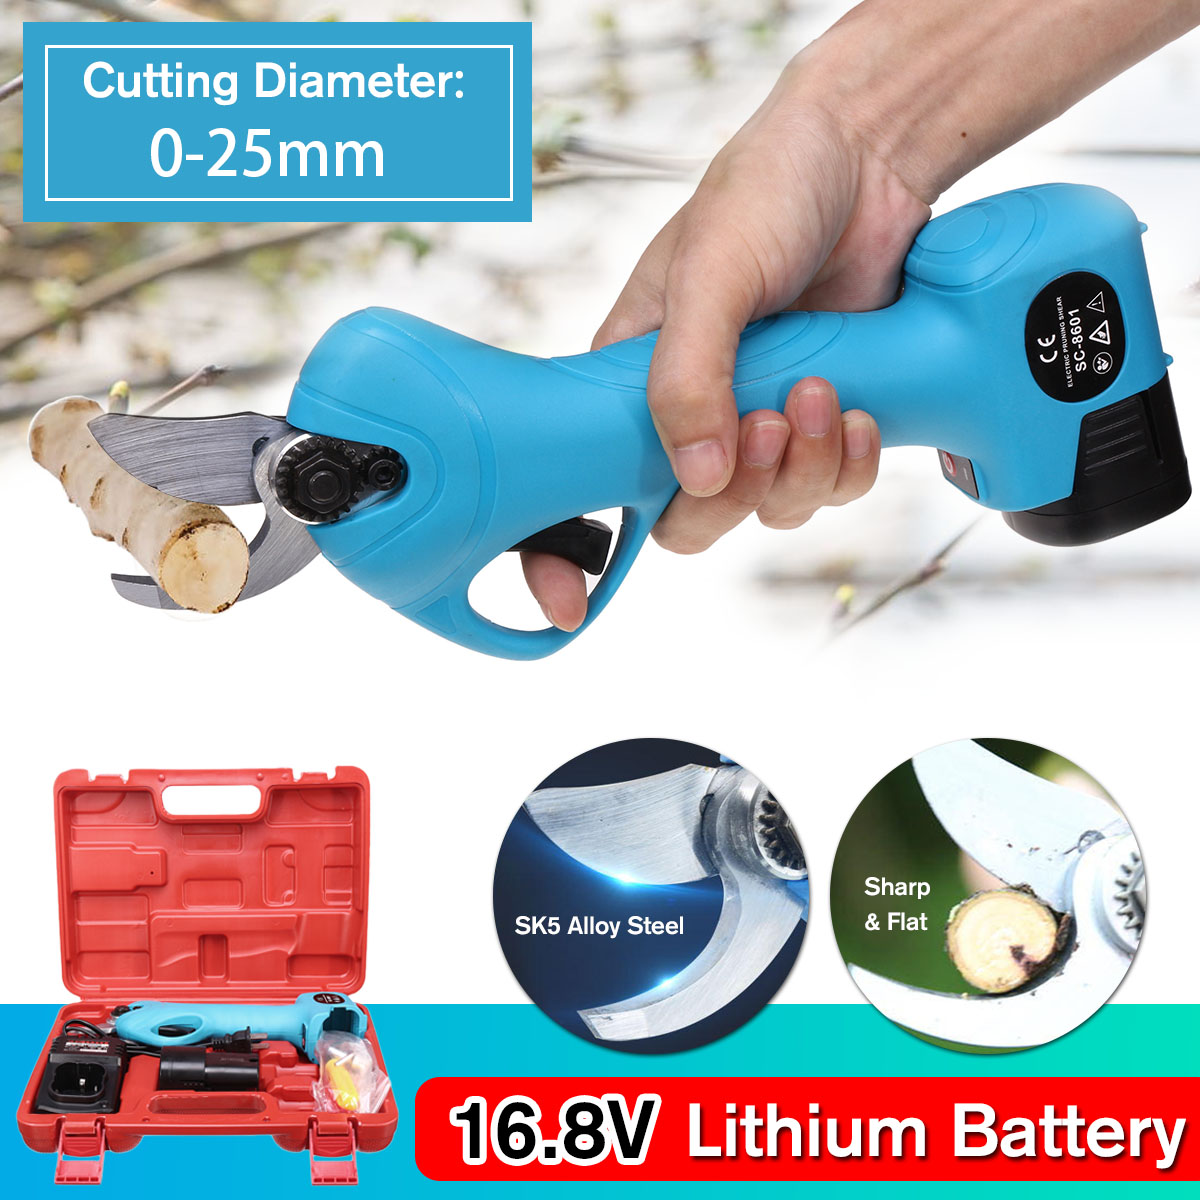 Pro SC-8601 Electric 16.8V Cordless Secateur Branch Cutter or Battery or Charger